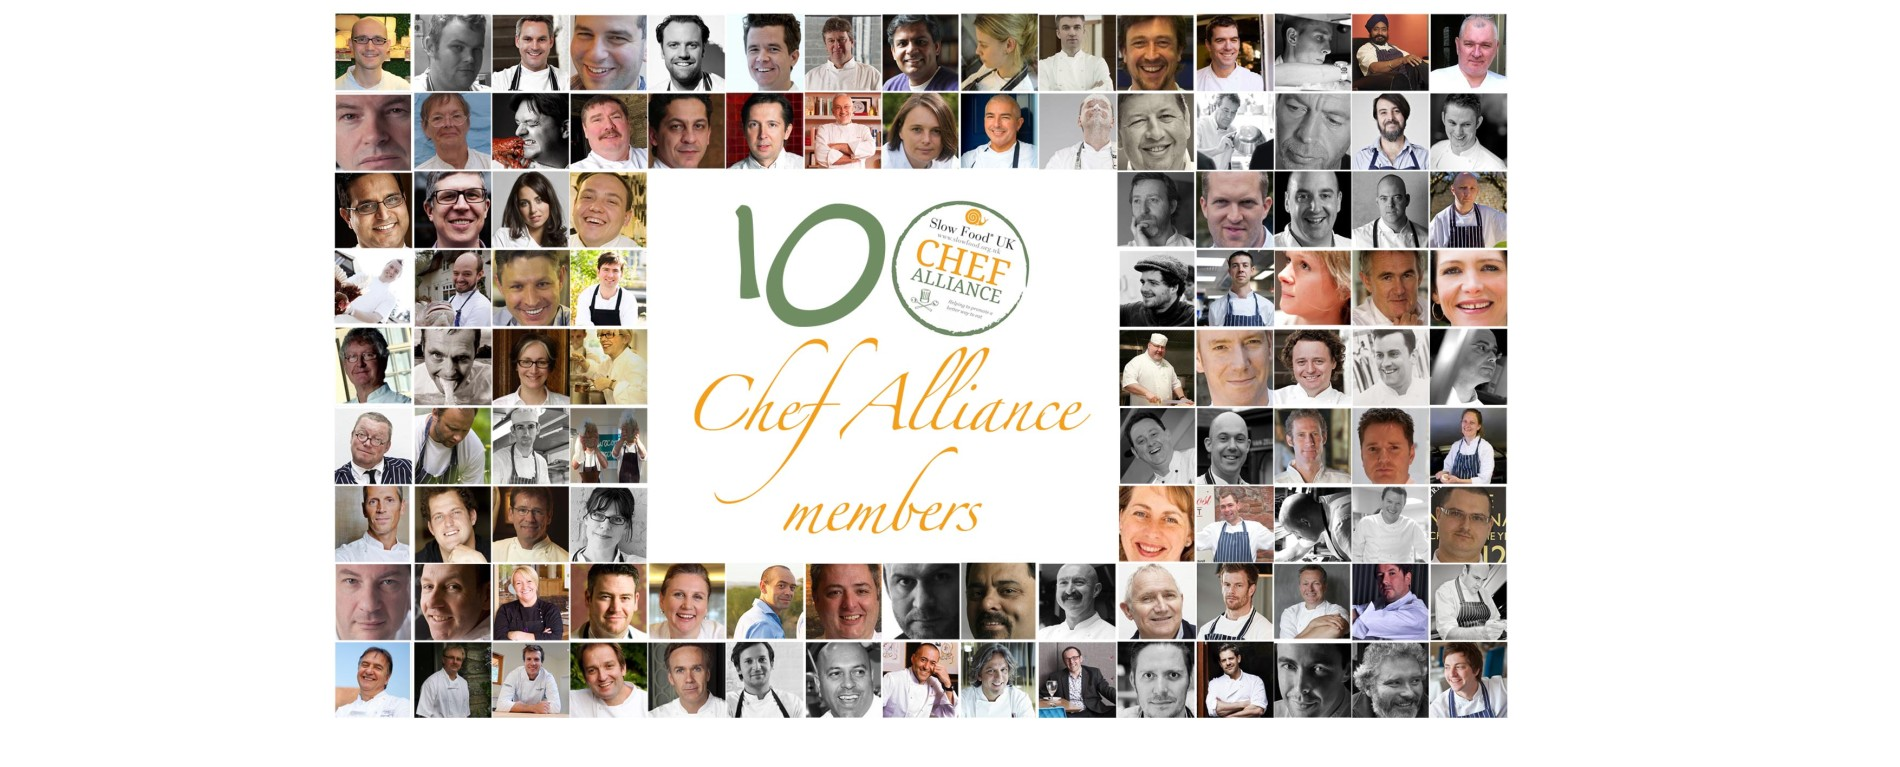 Slow Food UK announces its 100th Chef Alliance Member